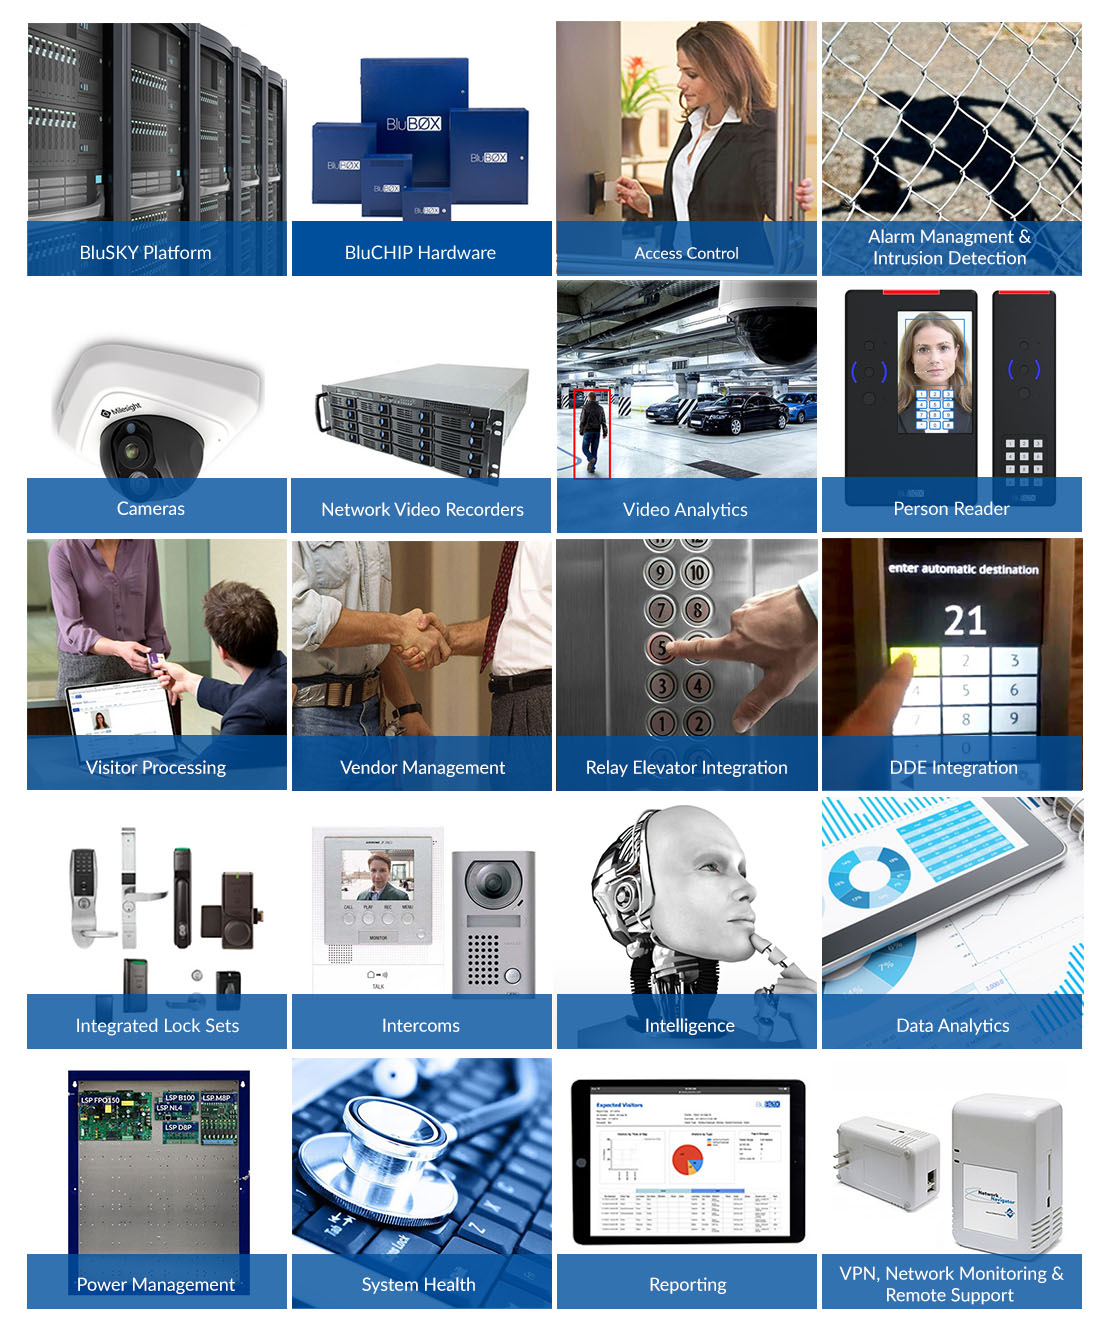 BluINFO_products_image_1.jpg